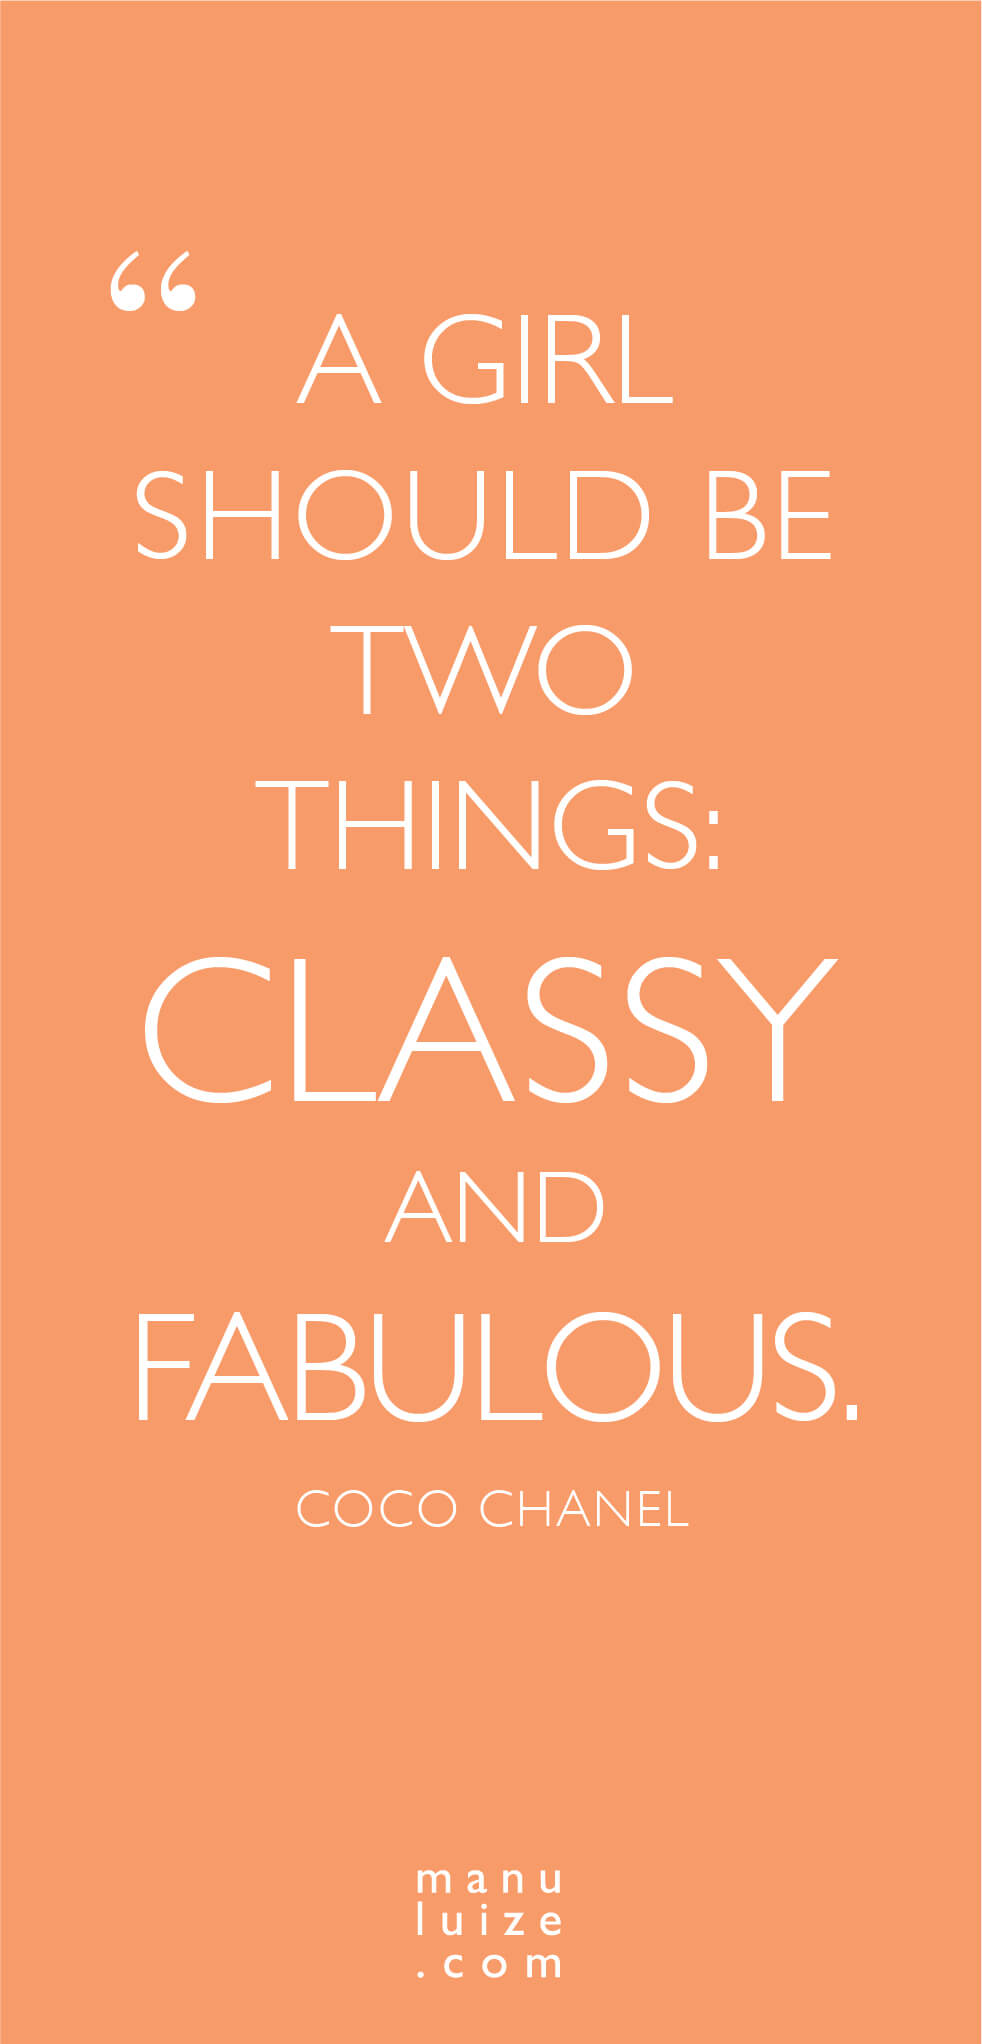 Chanel quote: classy and fabulous